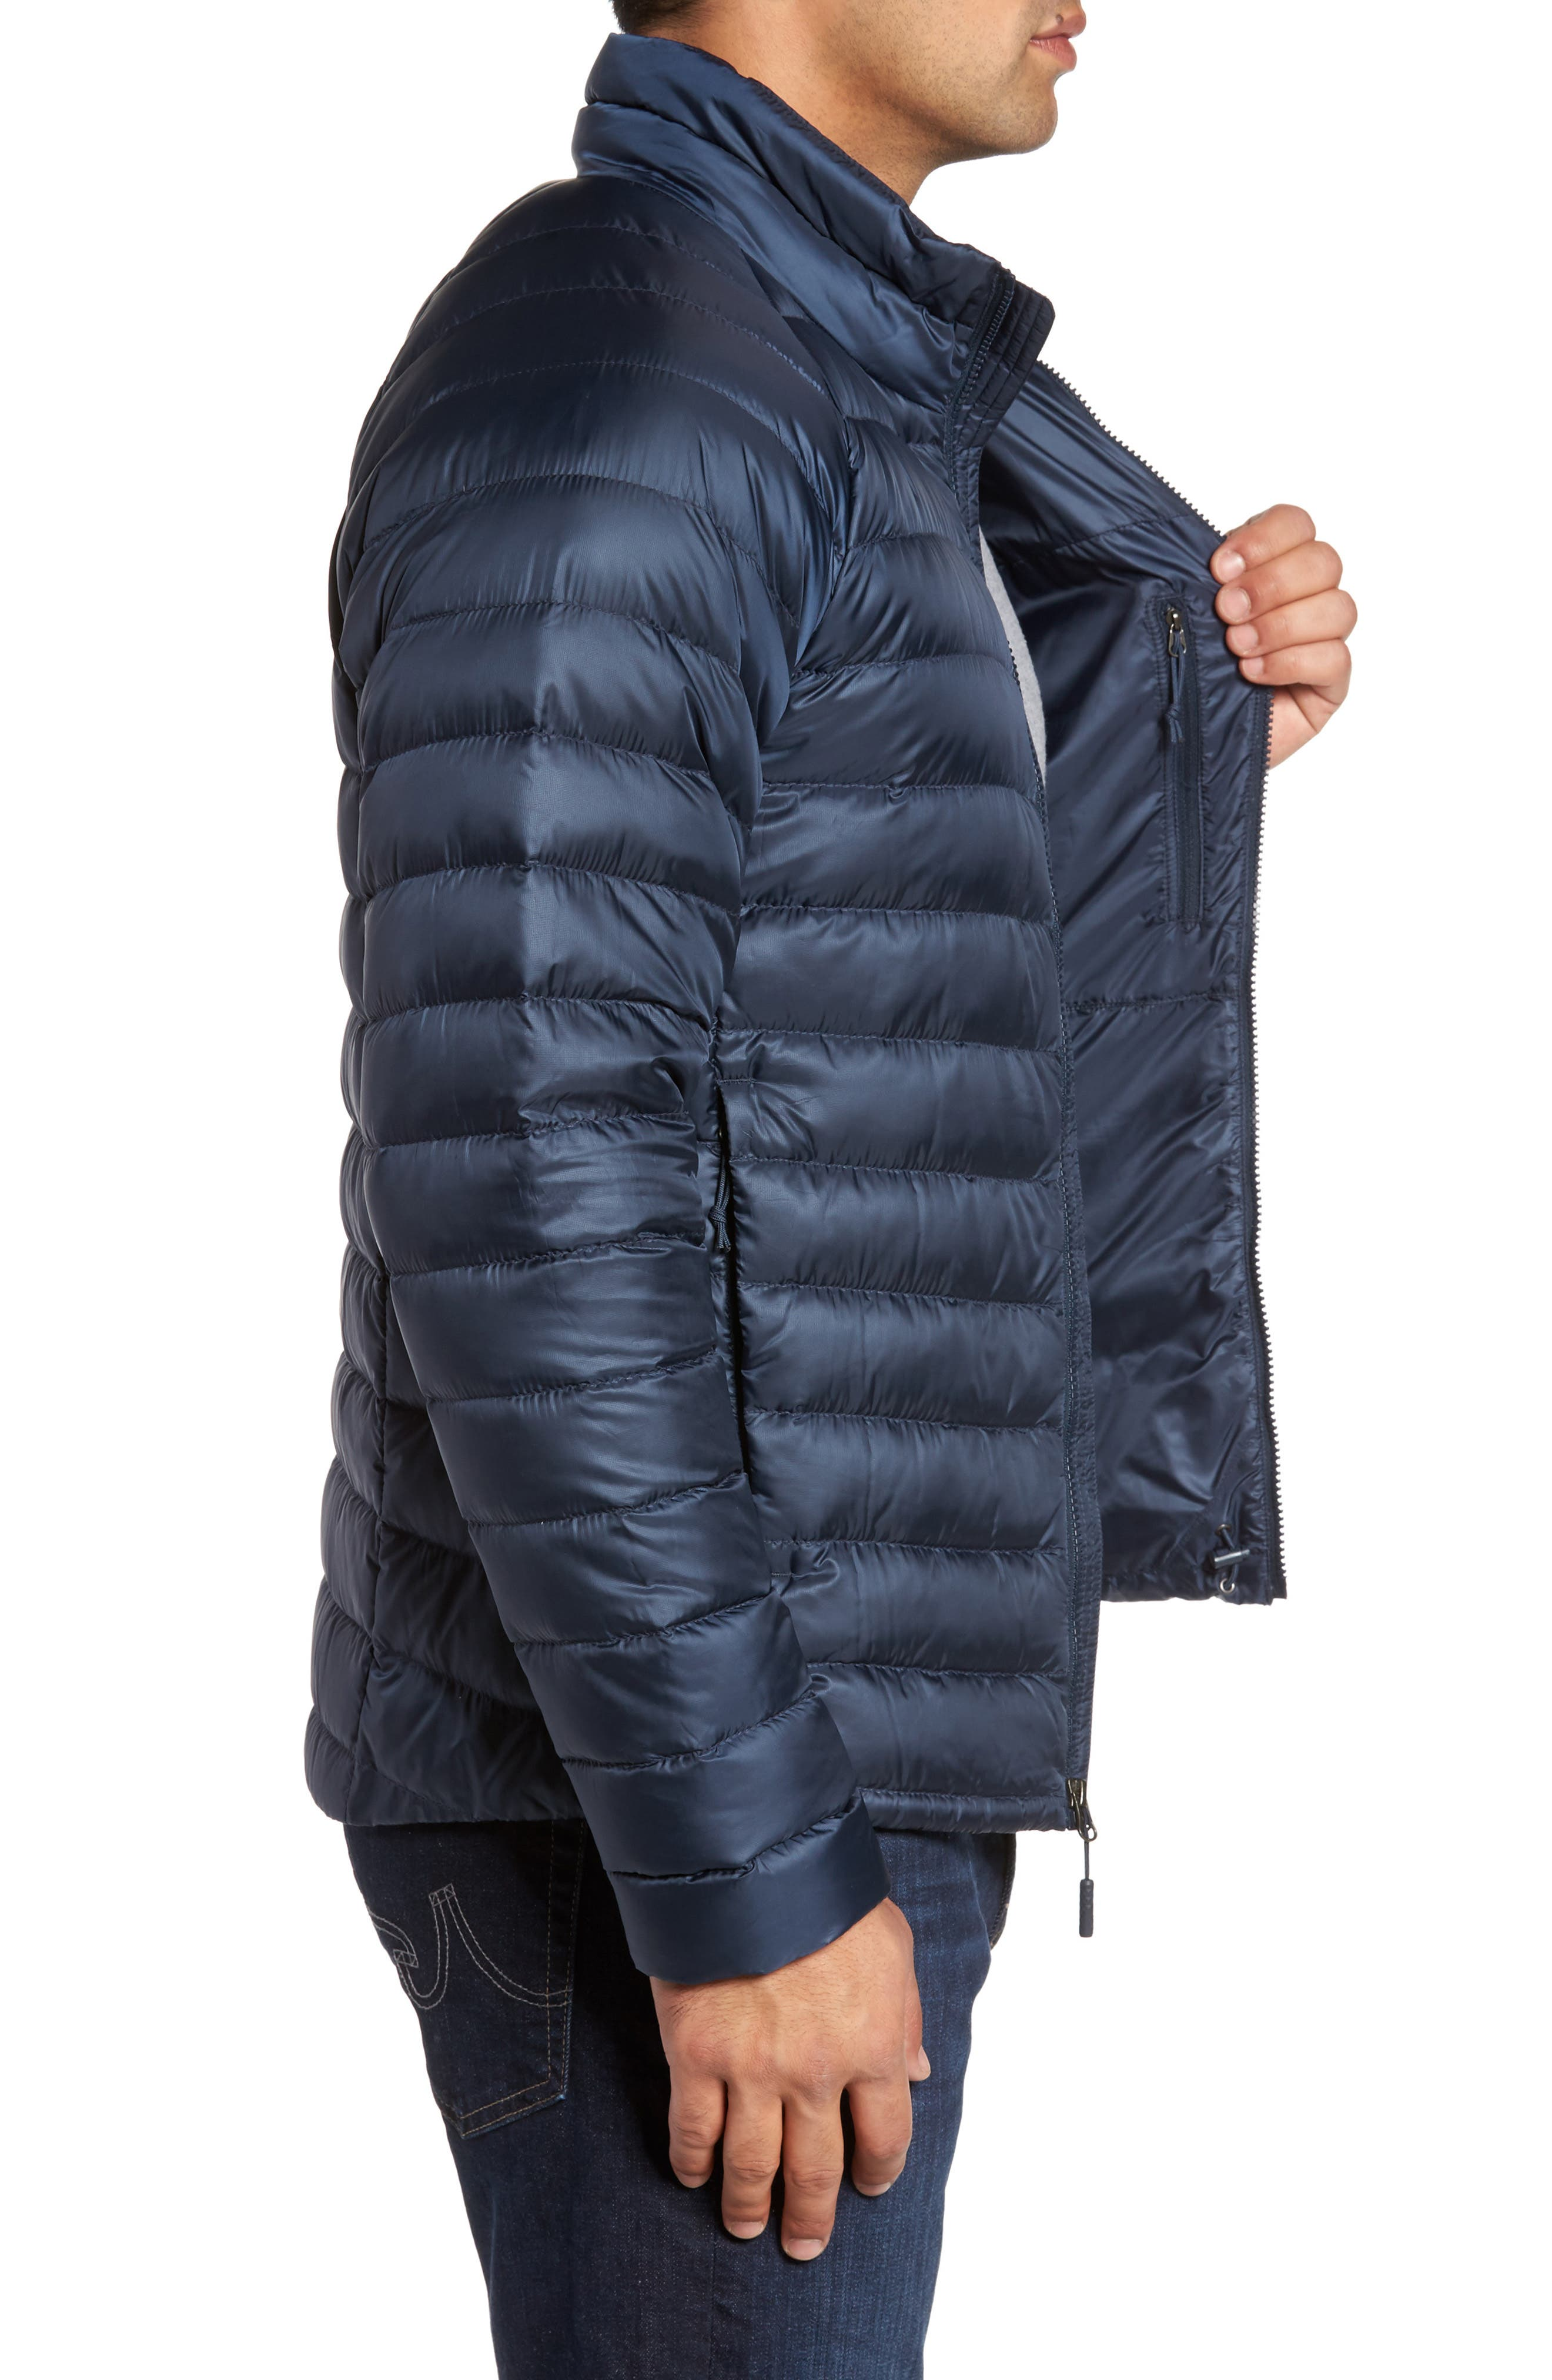 Trevail Water Repellent Packable Down Jacket,                             Alternate thumbnail 3, color,                             Urban Navy/ Urban Navy